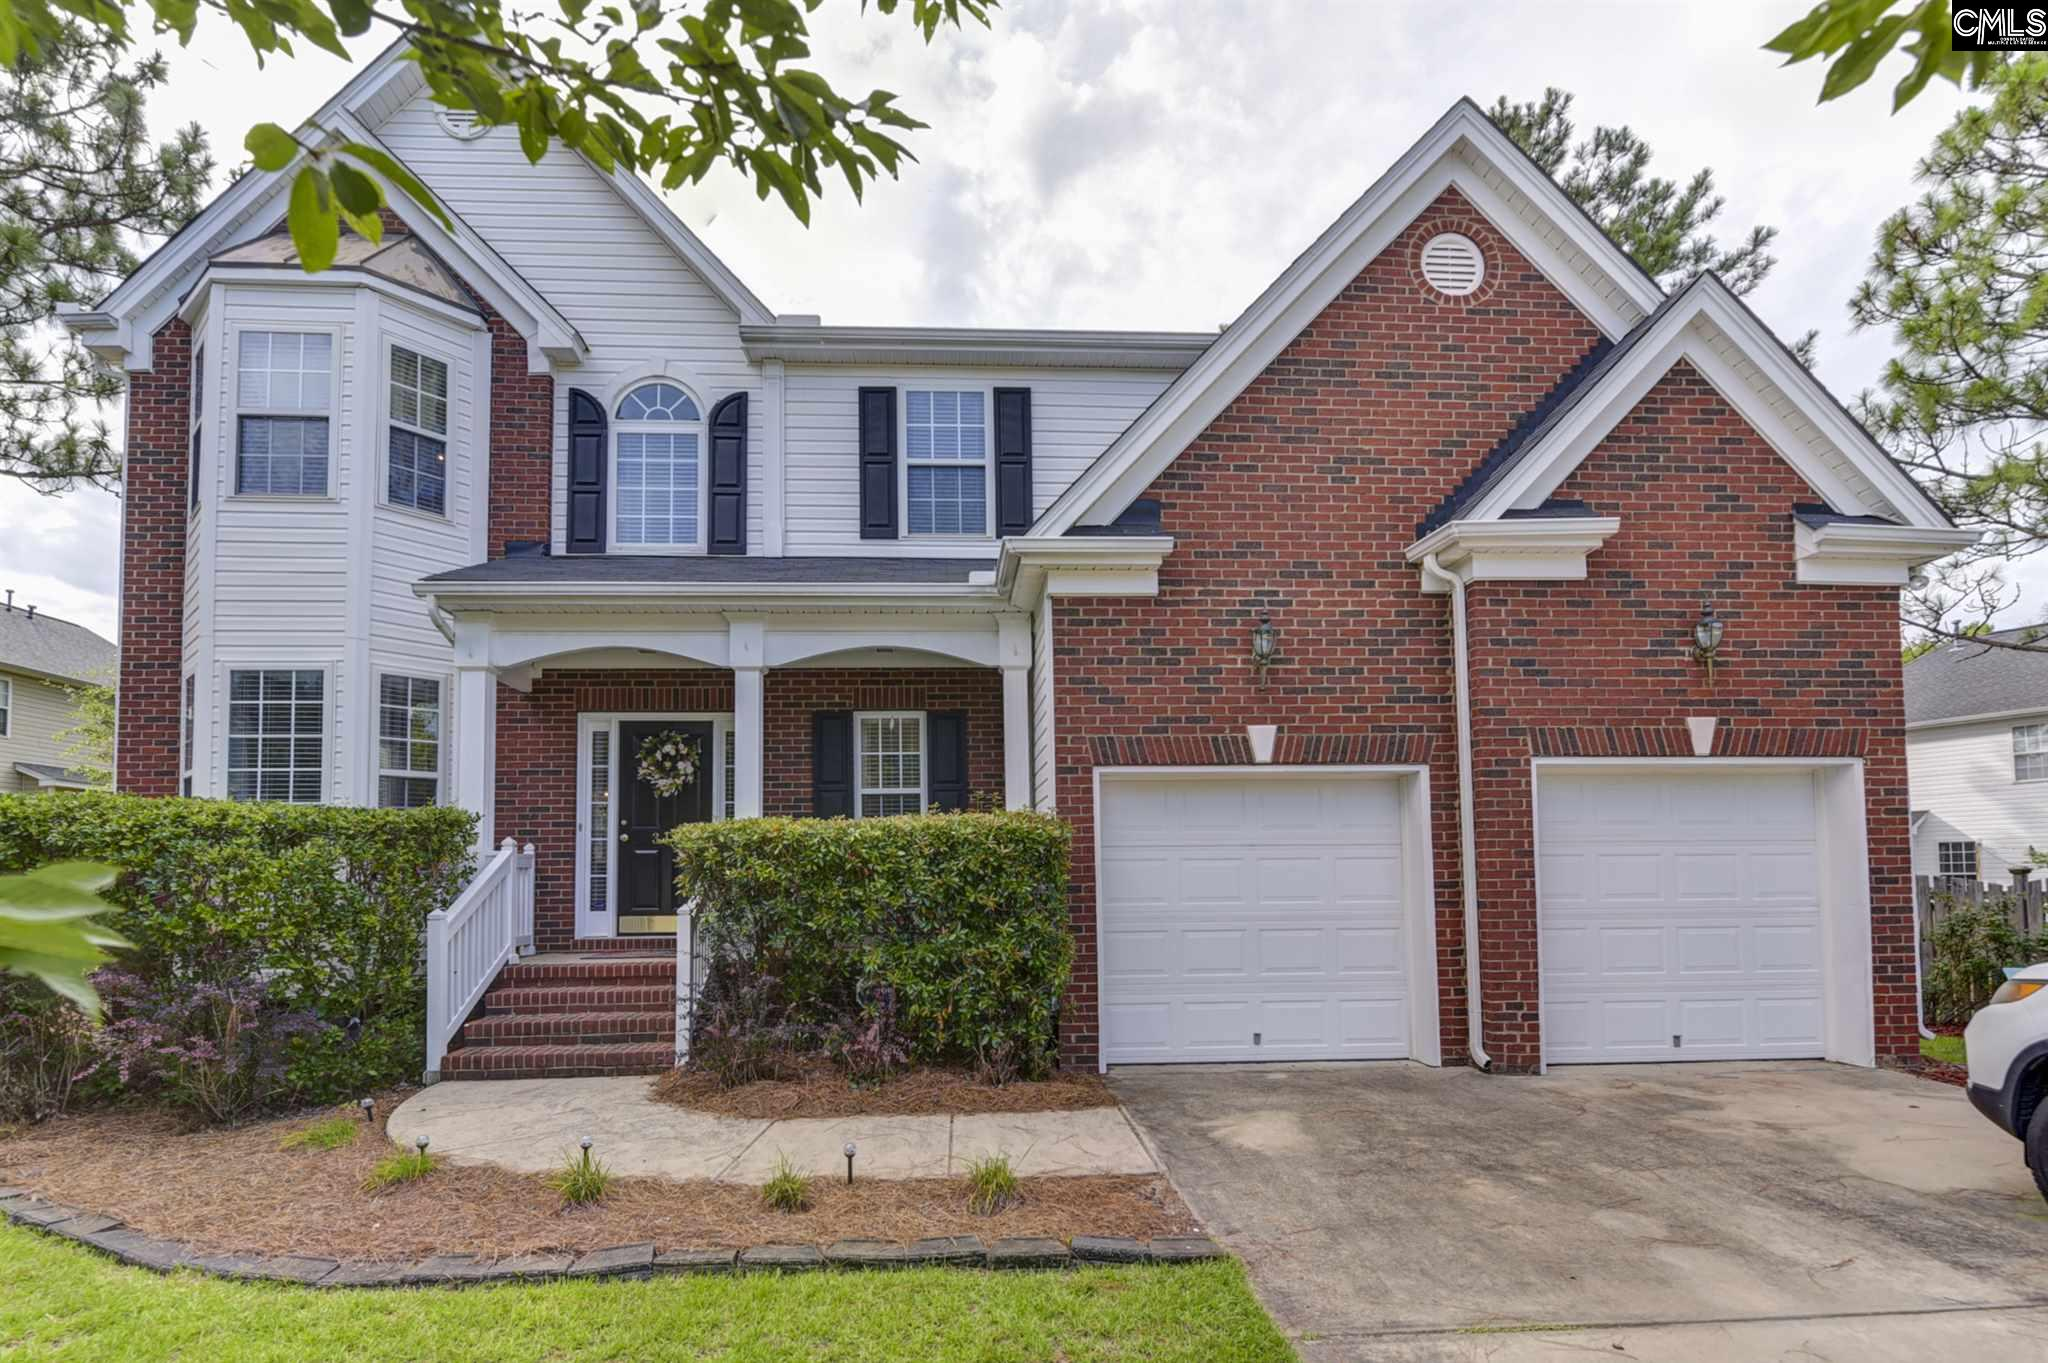 315 Water Hickory Columbia, SC 29229-7553